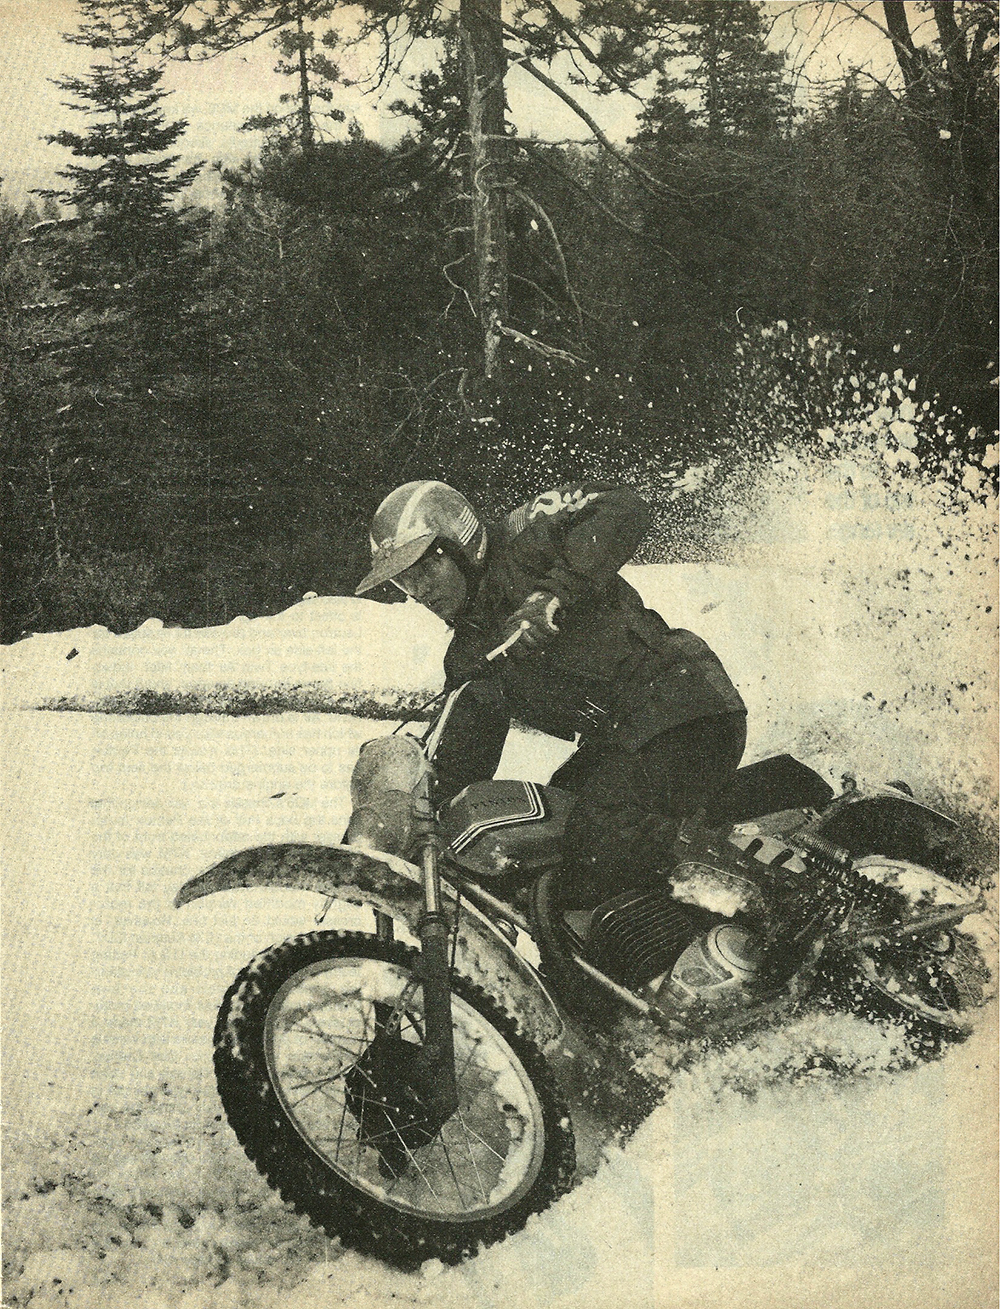 1977 Penton MC6 250 Enduro road test 2.jpg